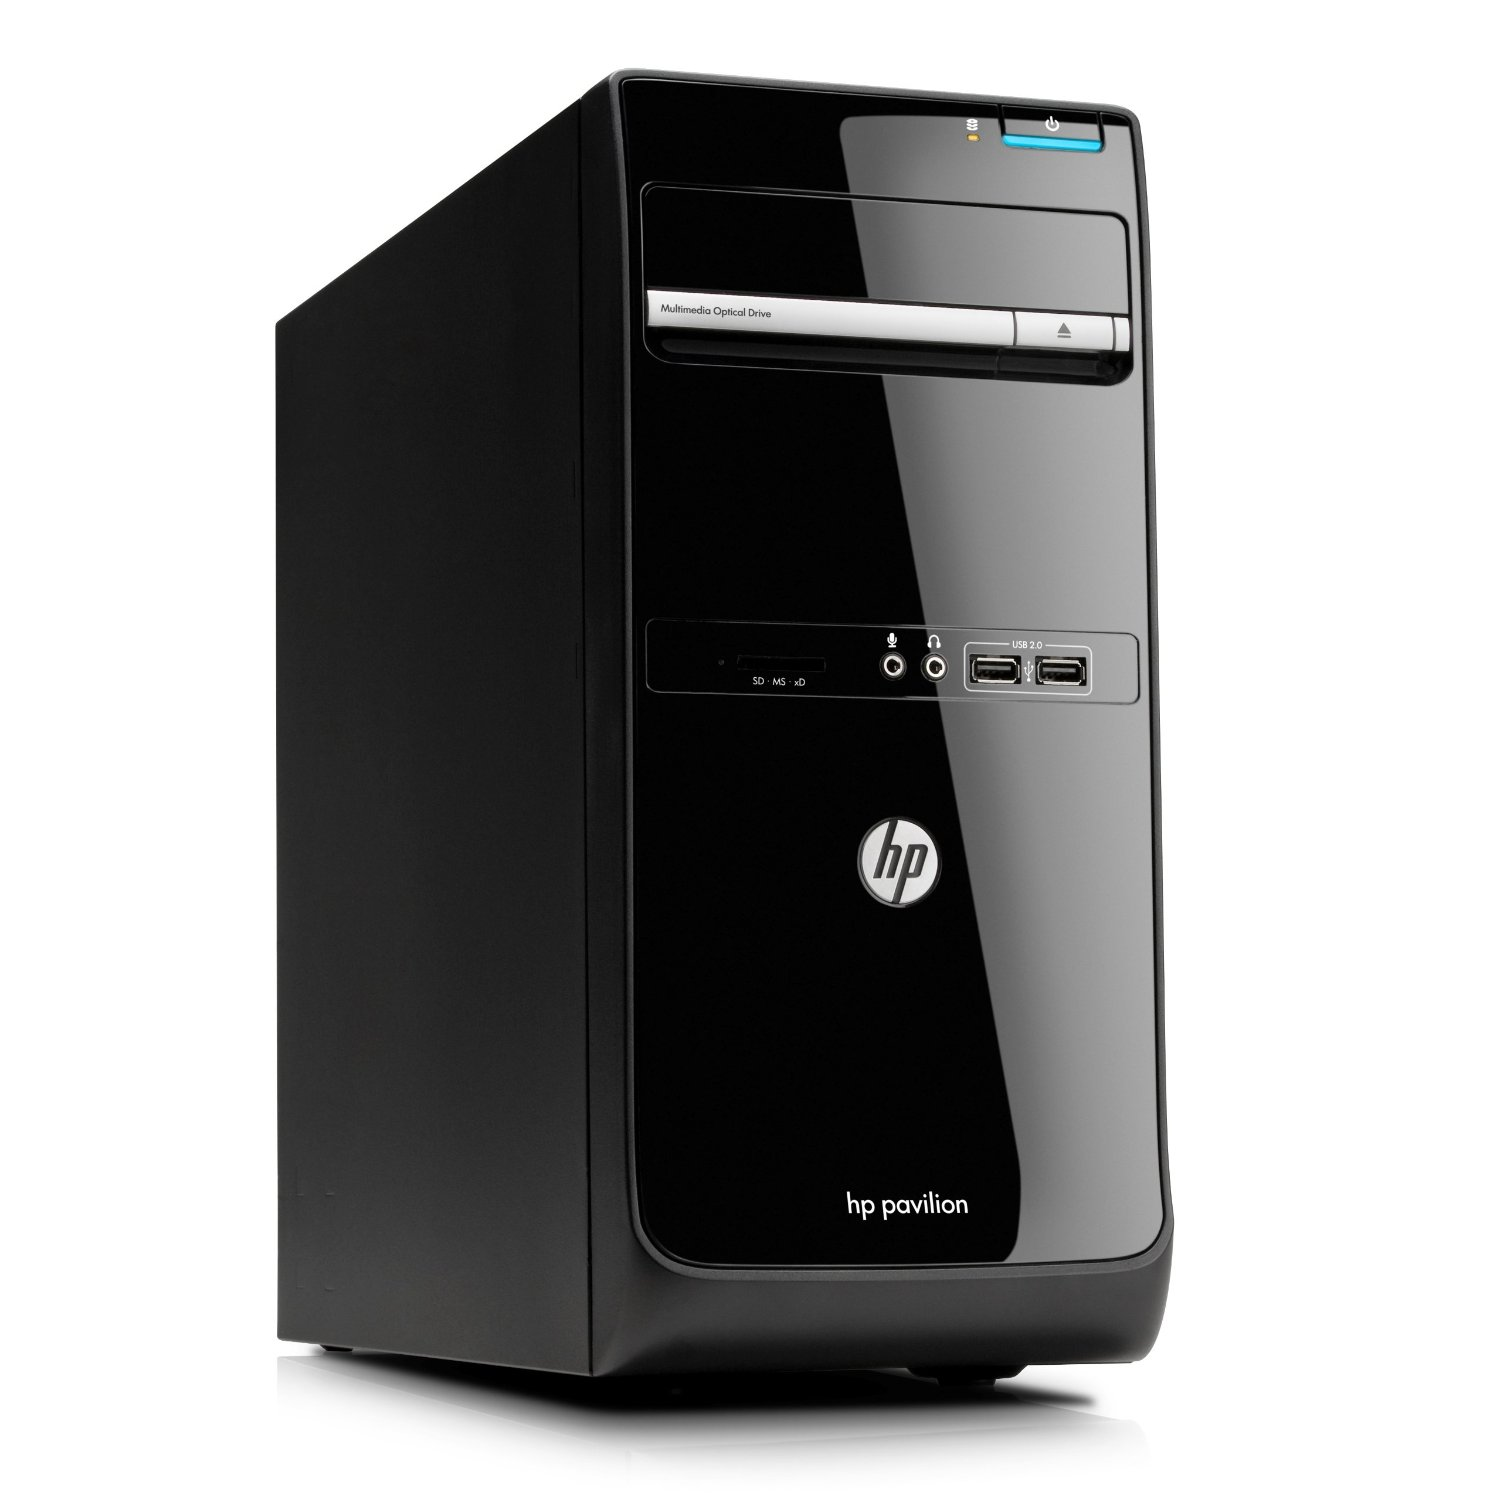 hp pavilion p6 2390 desktop review. Black Bedroom Furniture Sets. Home Design Ideas